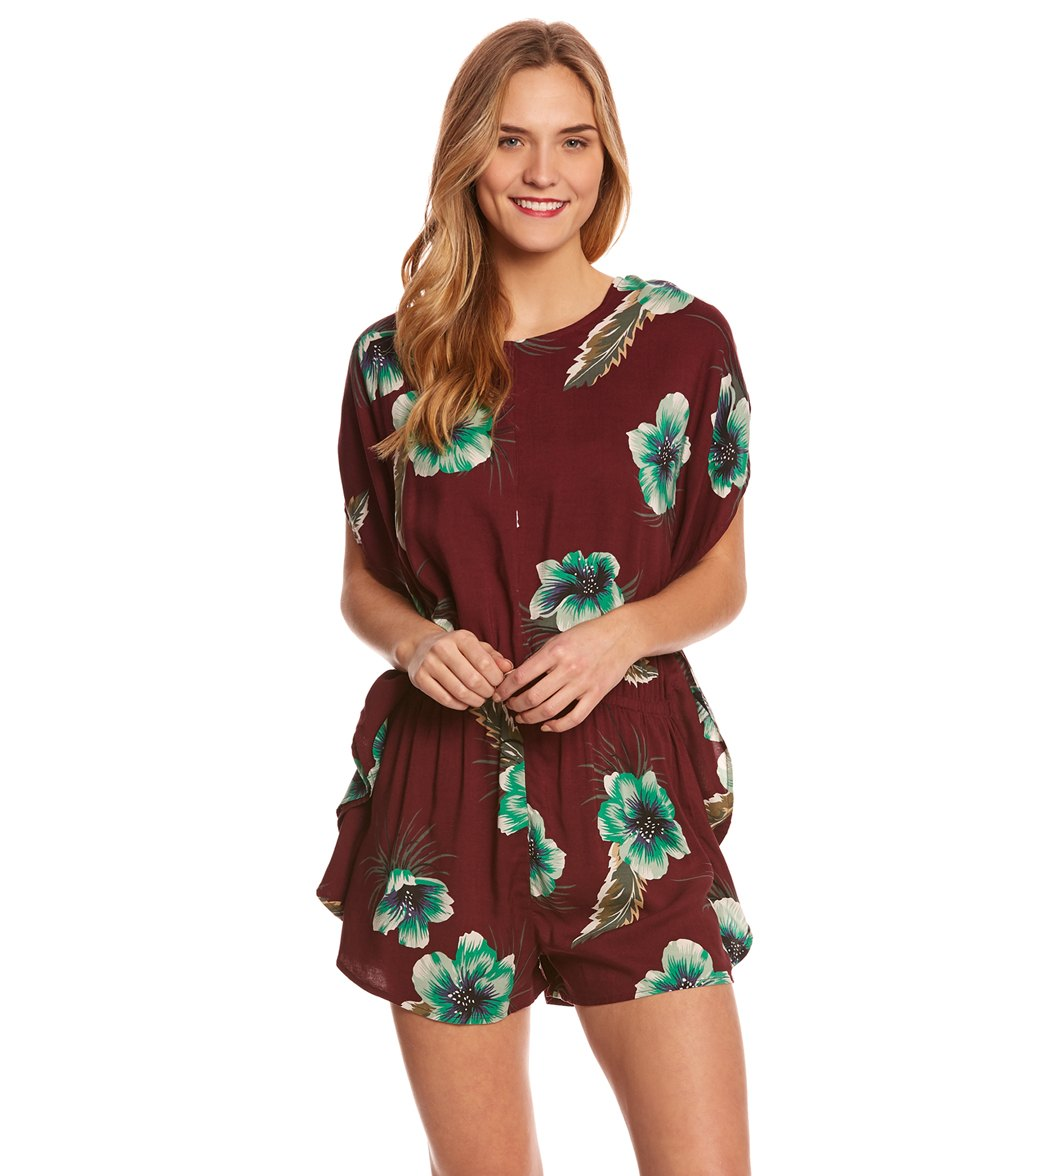 b916b3eec57 Volcom Fox Tail Palm Romper at SwimOutlet.com - Free Shipping